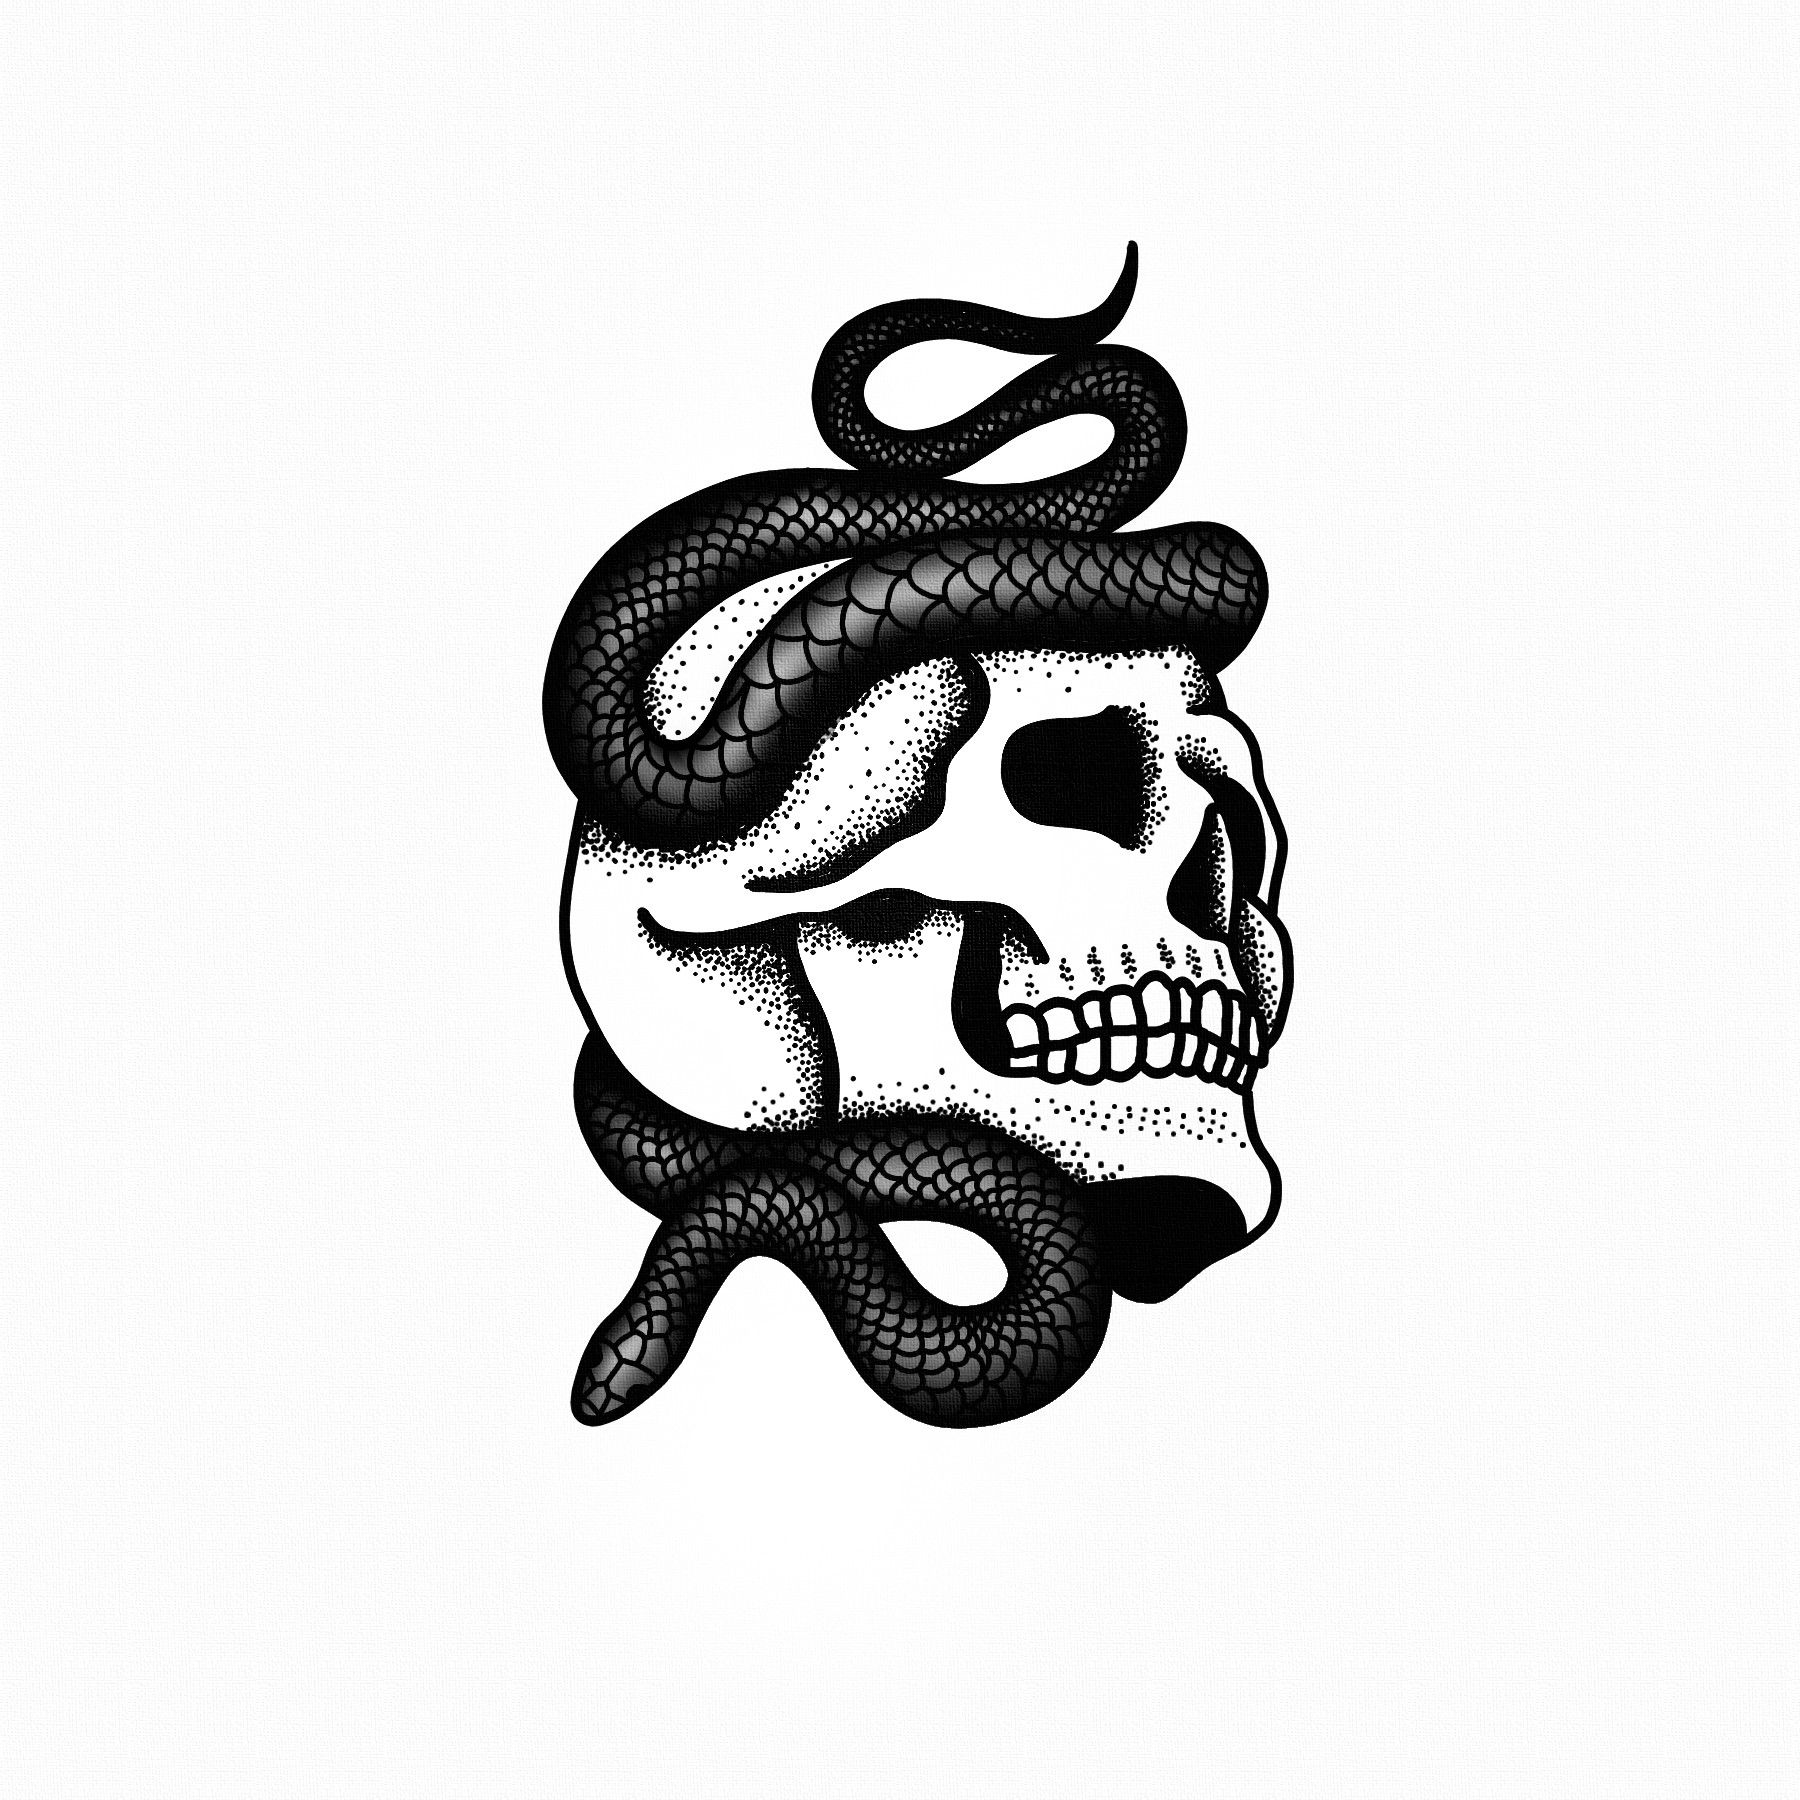 Stanley Duke Tattoo Illustration Blackwork Black Skull Snake Dotwork Linework Linetattoo Stippling Tattooer Art Artis Tattoo Inca Tatuagem Tatuagem Tradicional